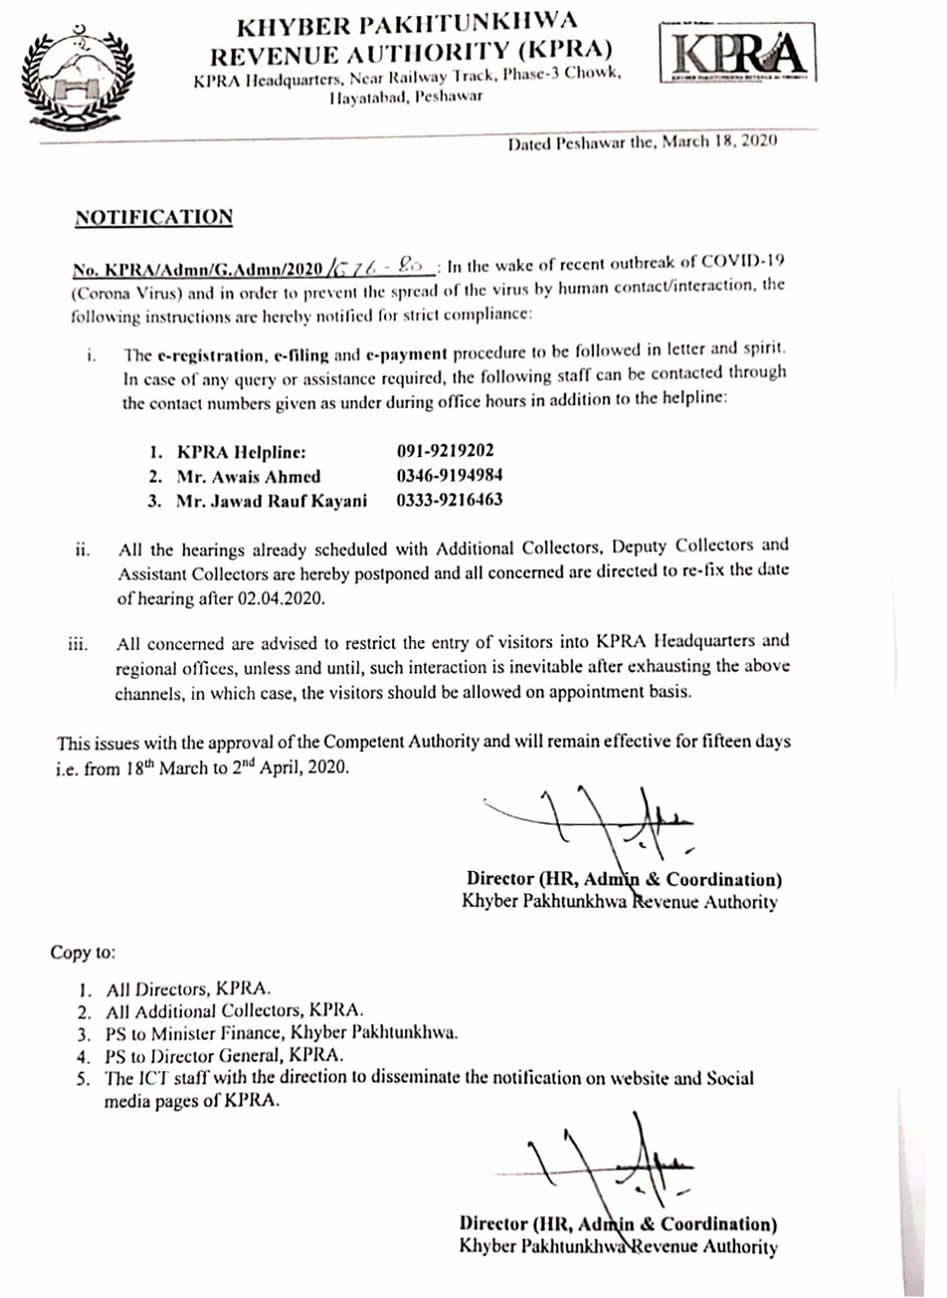 Notification regarding recent outbreak of COVID-19 and in order to prevent the spread of the virus by human interaction.